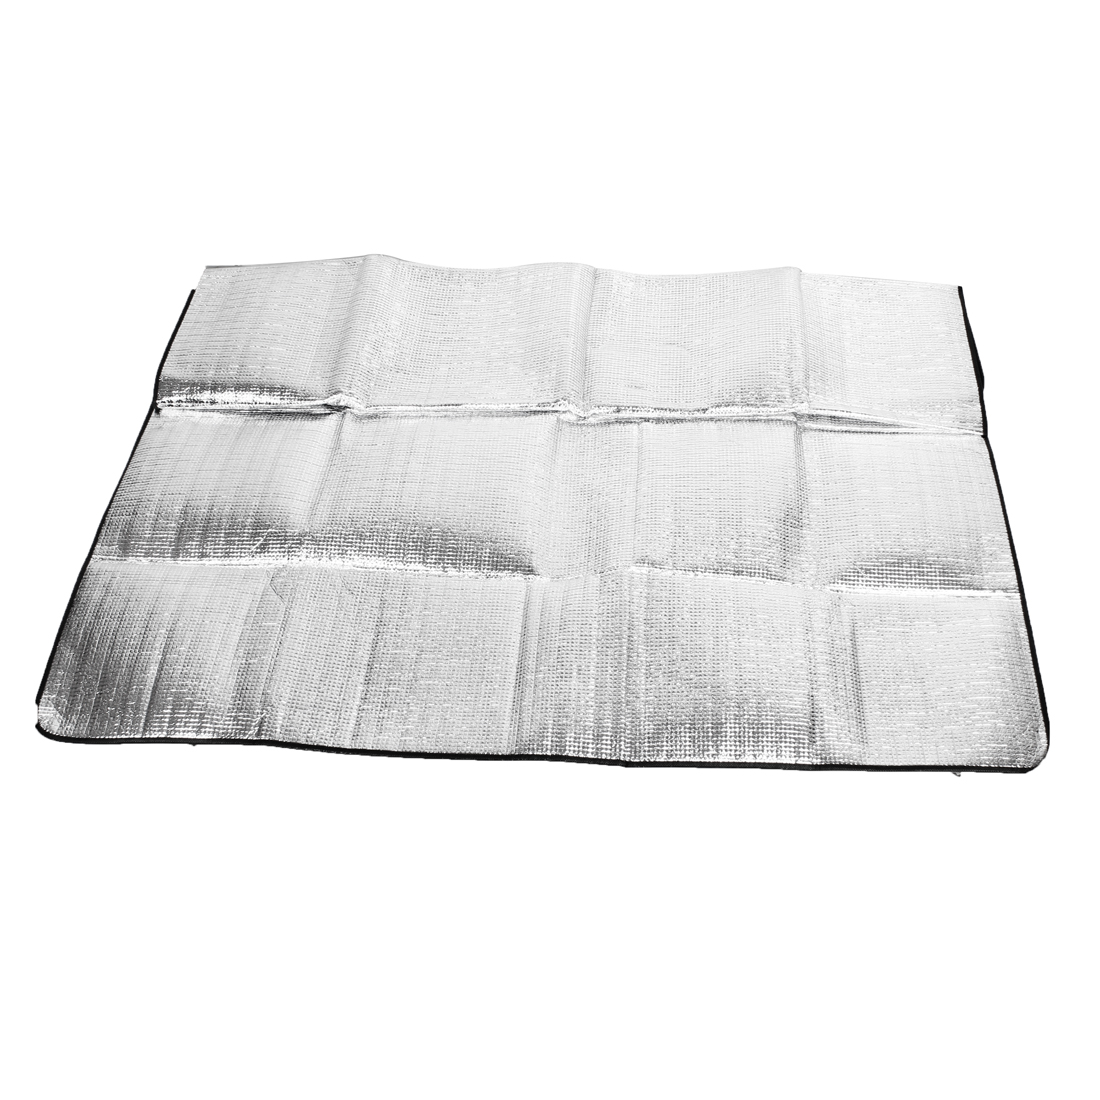 Aluminum Foil Water Resistant Sleeping Pad Mat Outdoor Camping Mattress